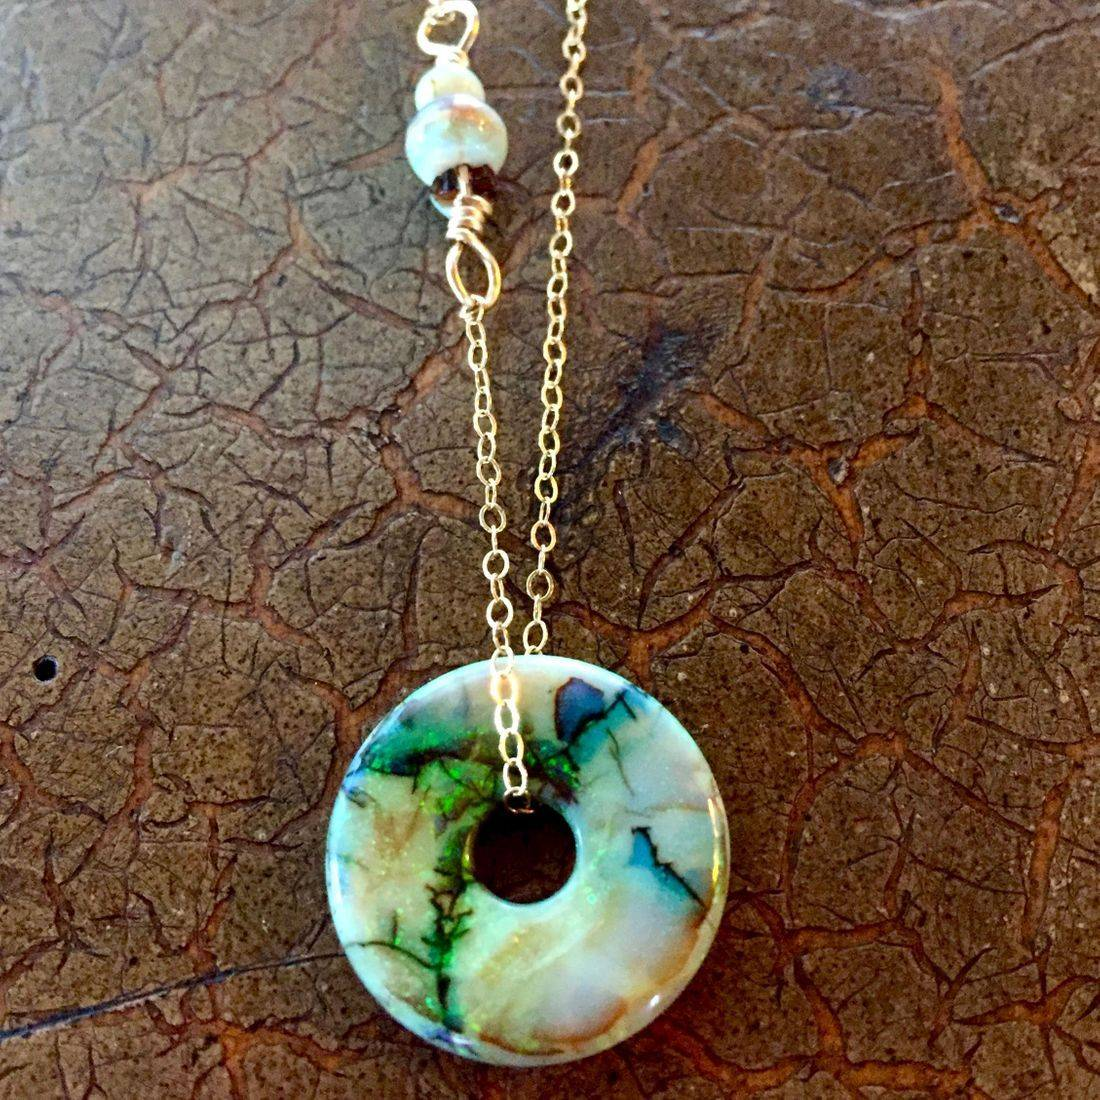 """Cultured Opal Lifesavers 18mm on 17"""" 14k gold filled chain $85.00 USD or 117.00 CAD"""